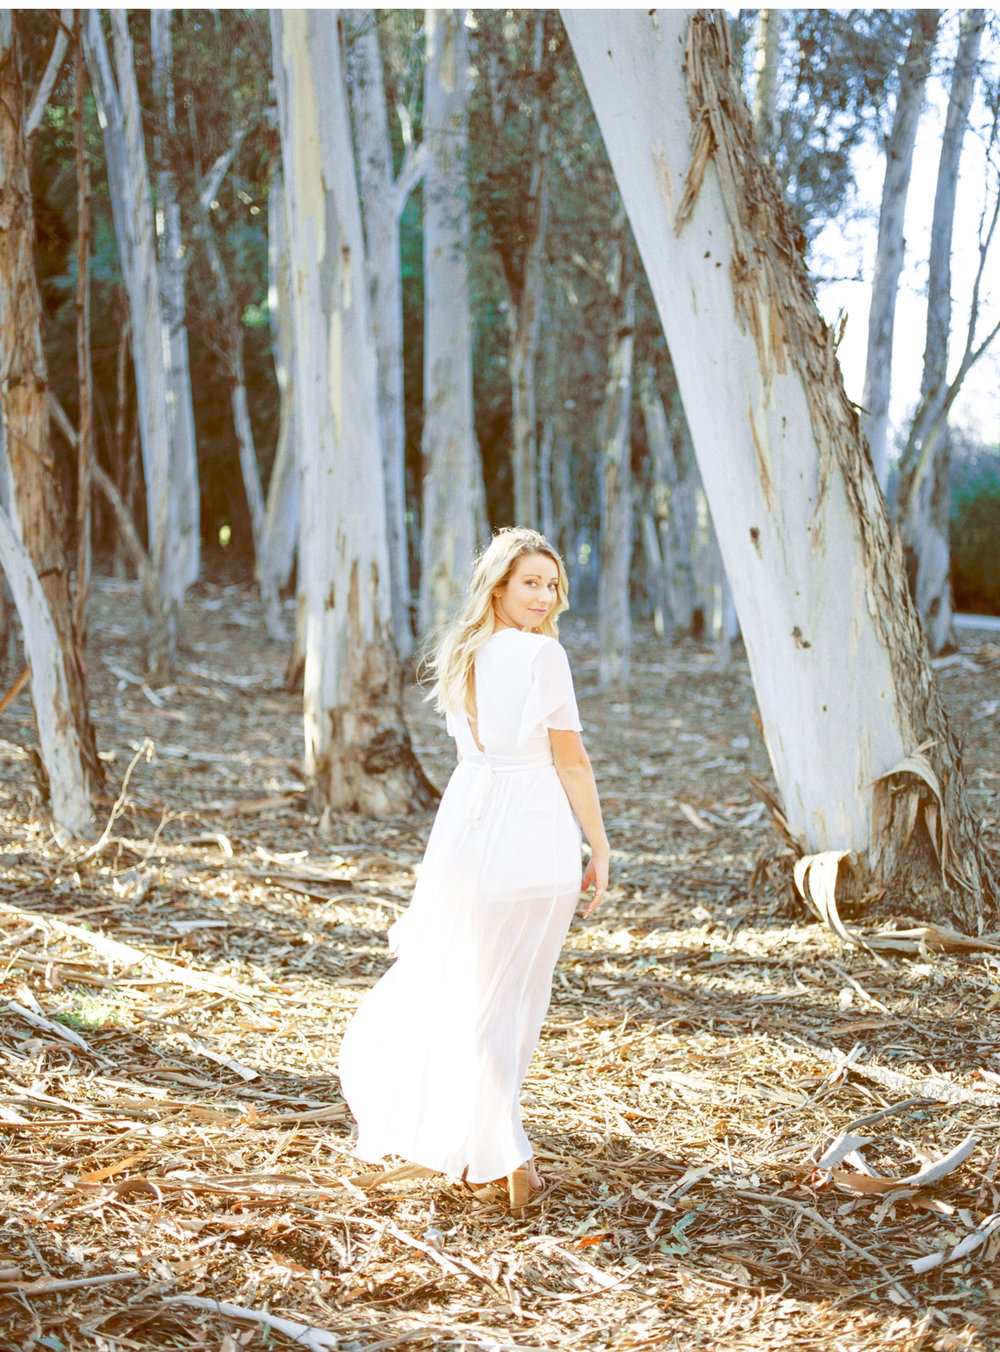 Malibu-Wedding-Natalie-Schutt-Photography-Style-Me-Pretty_11.jpg